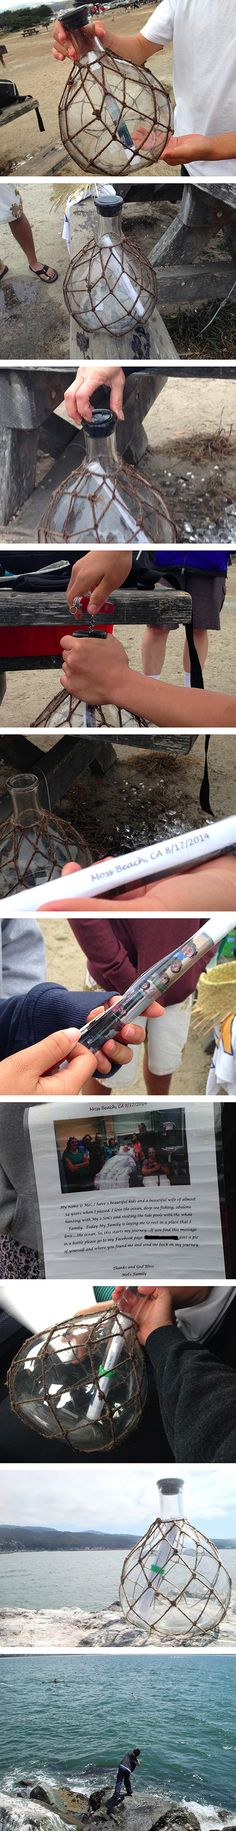 These days, finding a message in a bottle seems like something out of a storybook. But this heartwarming tale is a real life experience that took place just recently along the shores of California. While some friends were fishing, they came upon a glass bottle that had washed up on the sand. Upon closer inspection, they discovered that it had a message sealed inside.